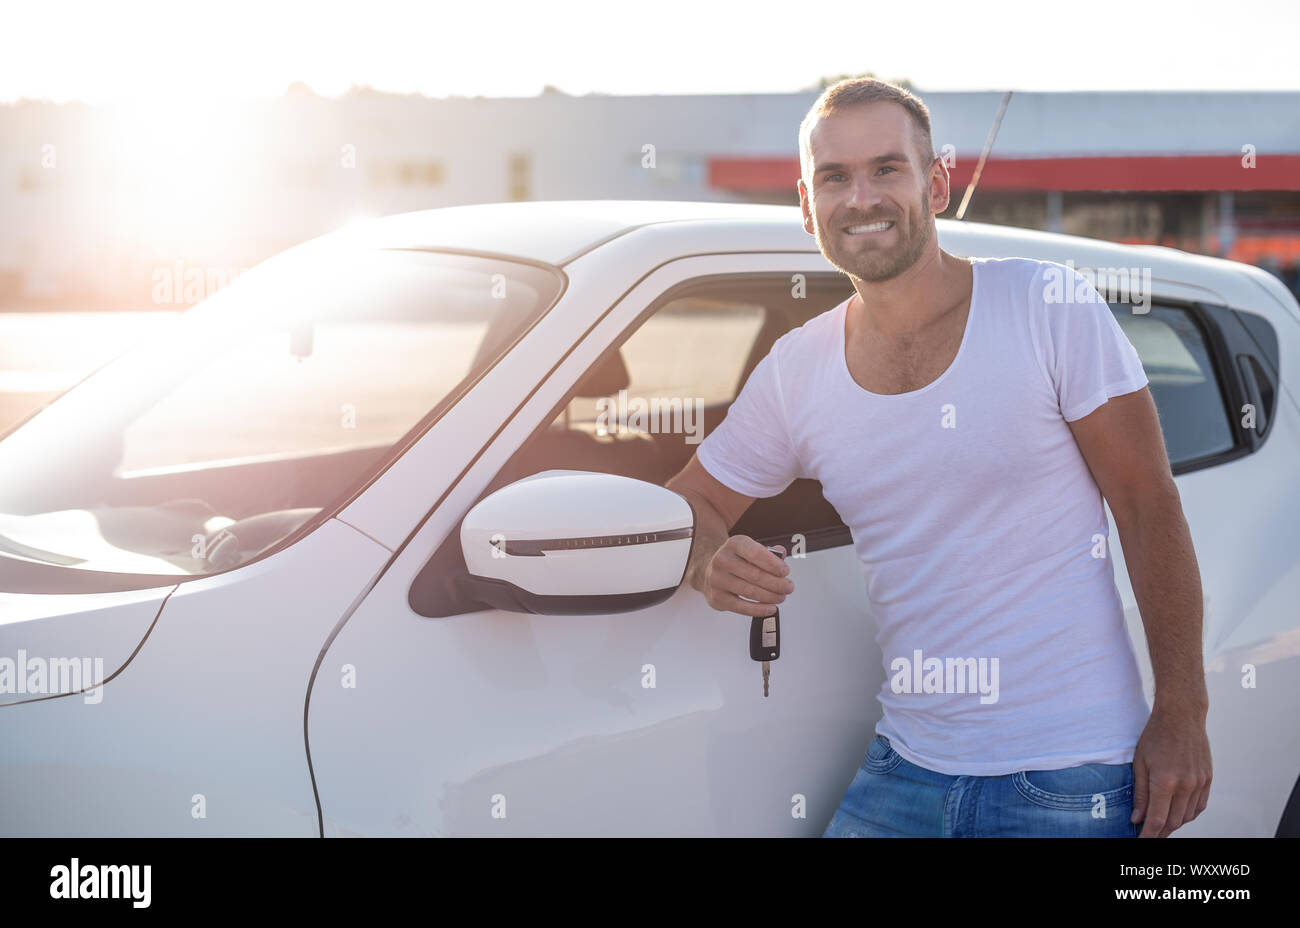 A male driver stands near a car with a key in his hand and smiles. Stock Photo